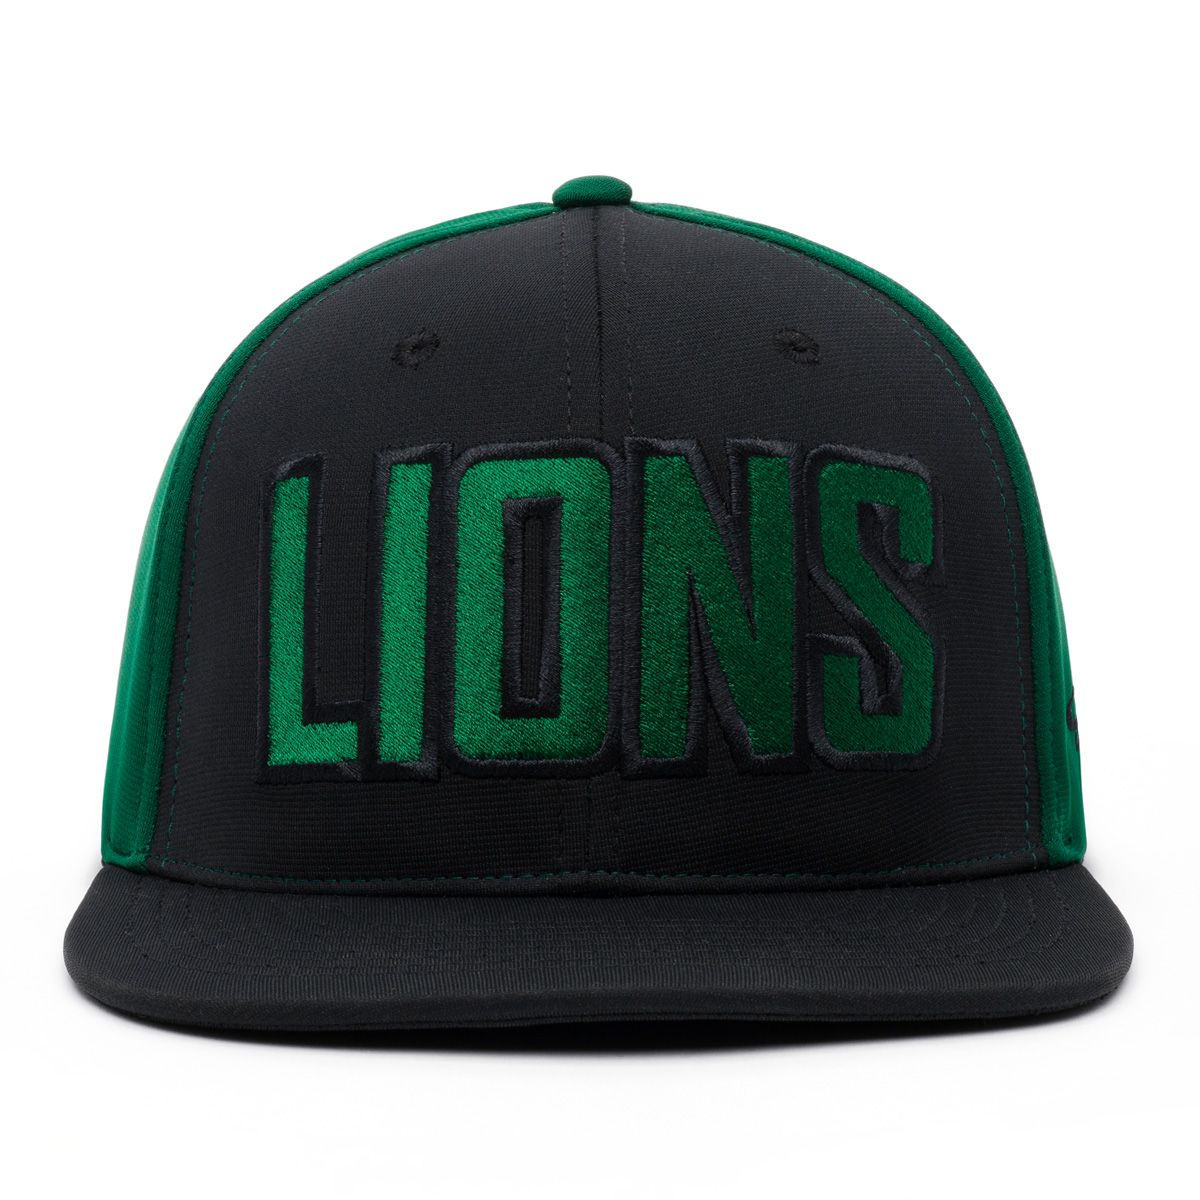 custom embroidered hat lions design